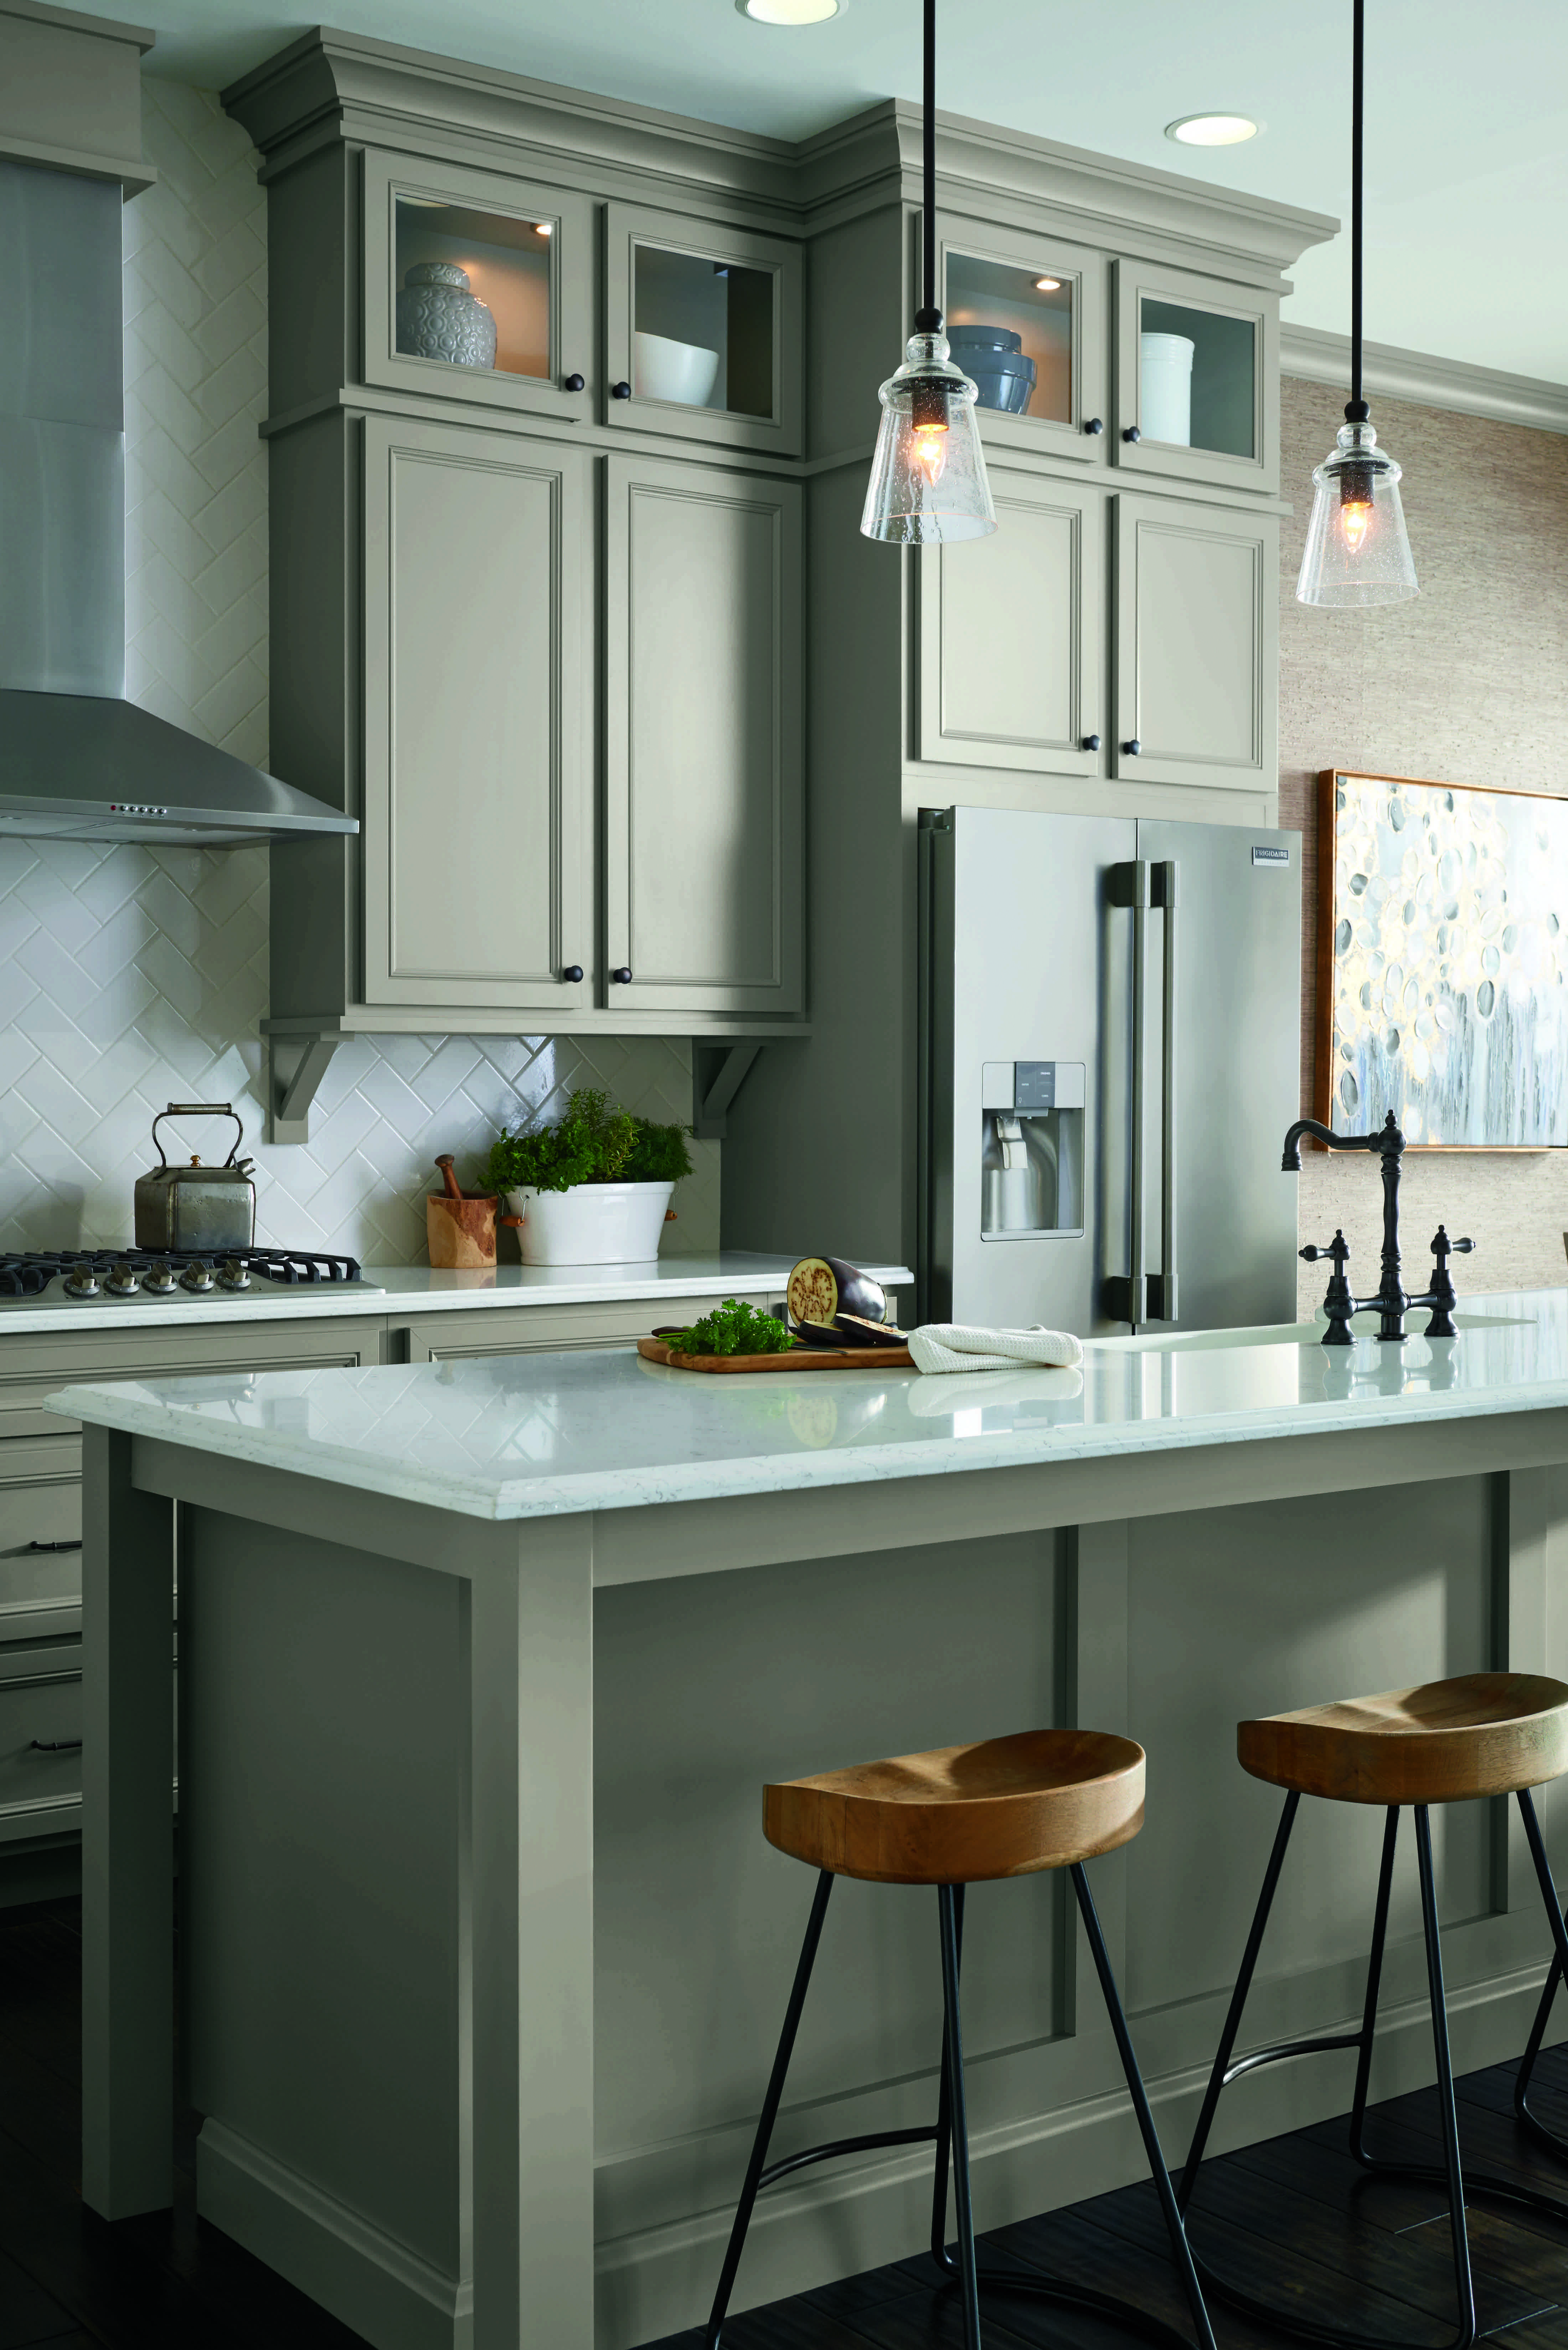 find other ideas kitchen countertops remodeling on a budget small kitchen remodeling l on kitchen makeover ideas id=28665